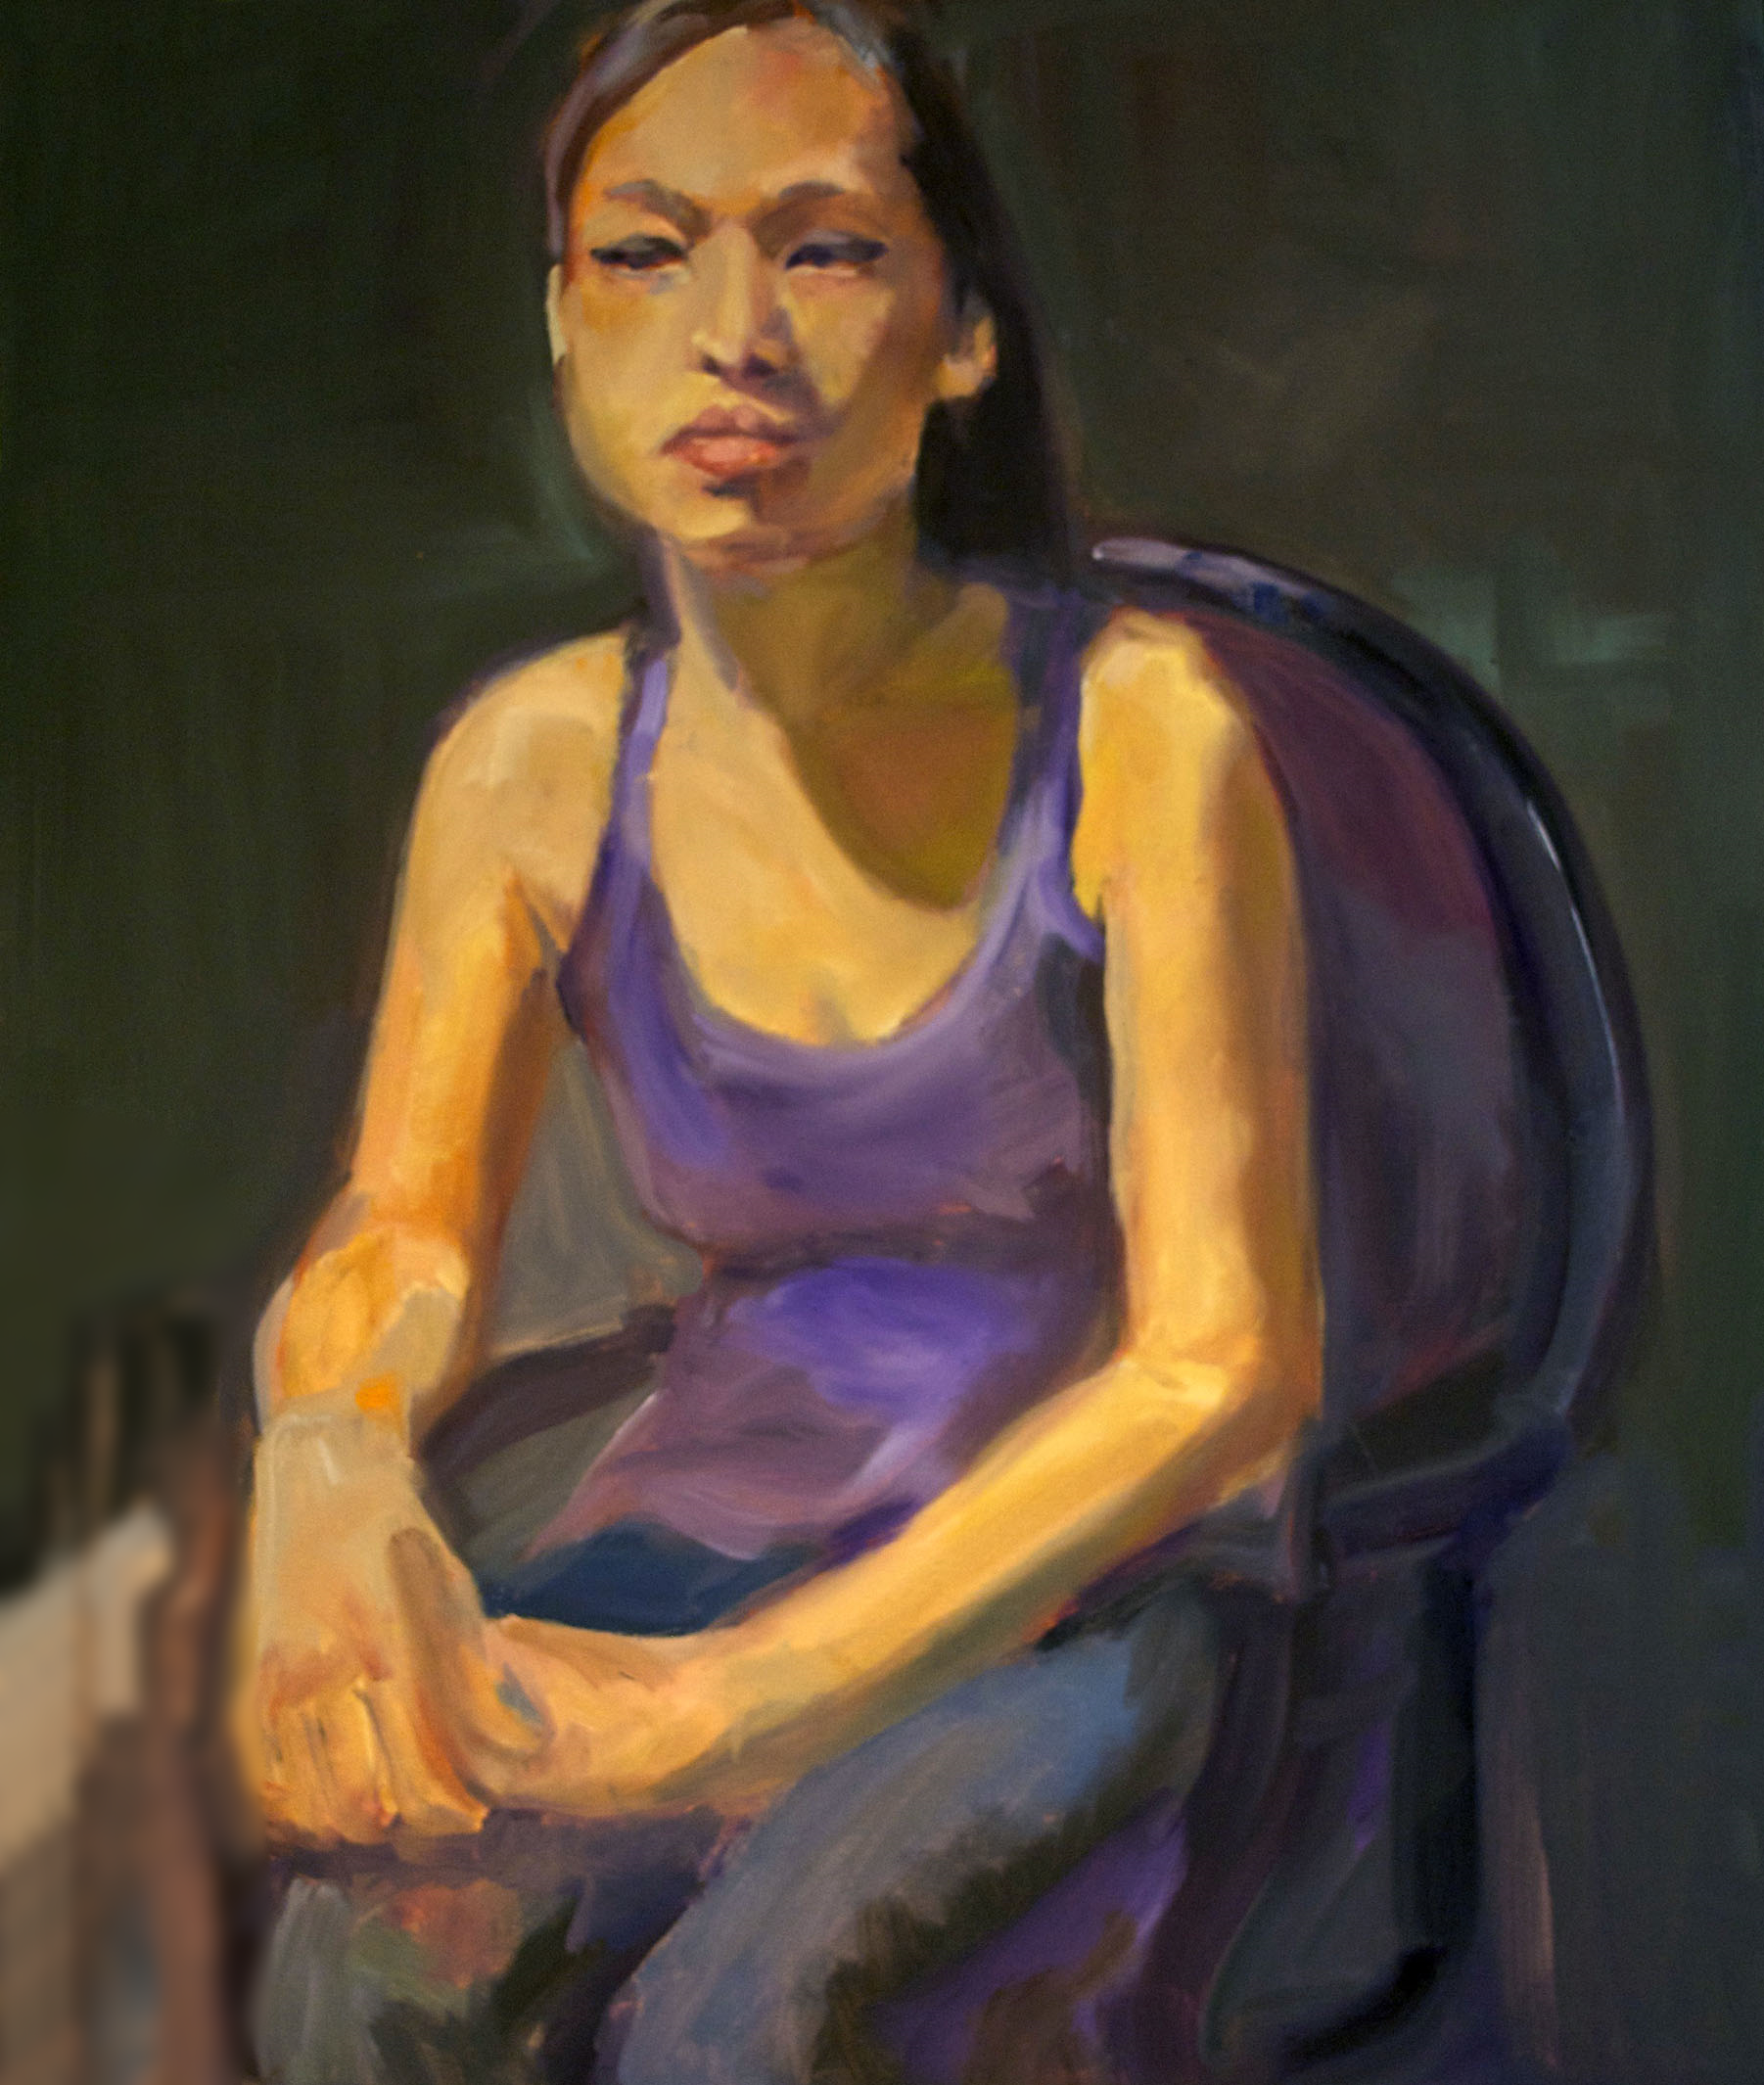 study,2014  Oil on Canvas   20 x 14 inches